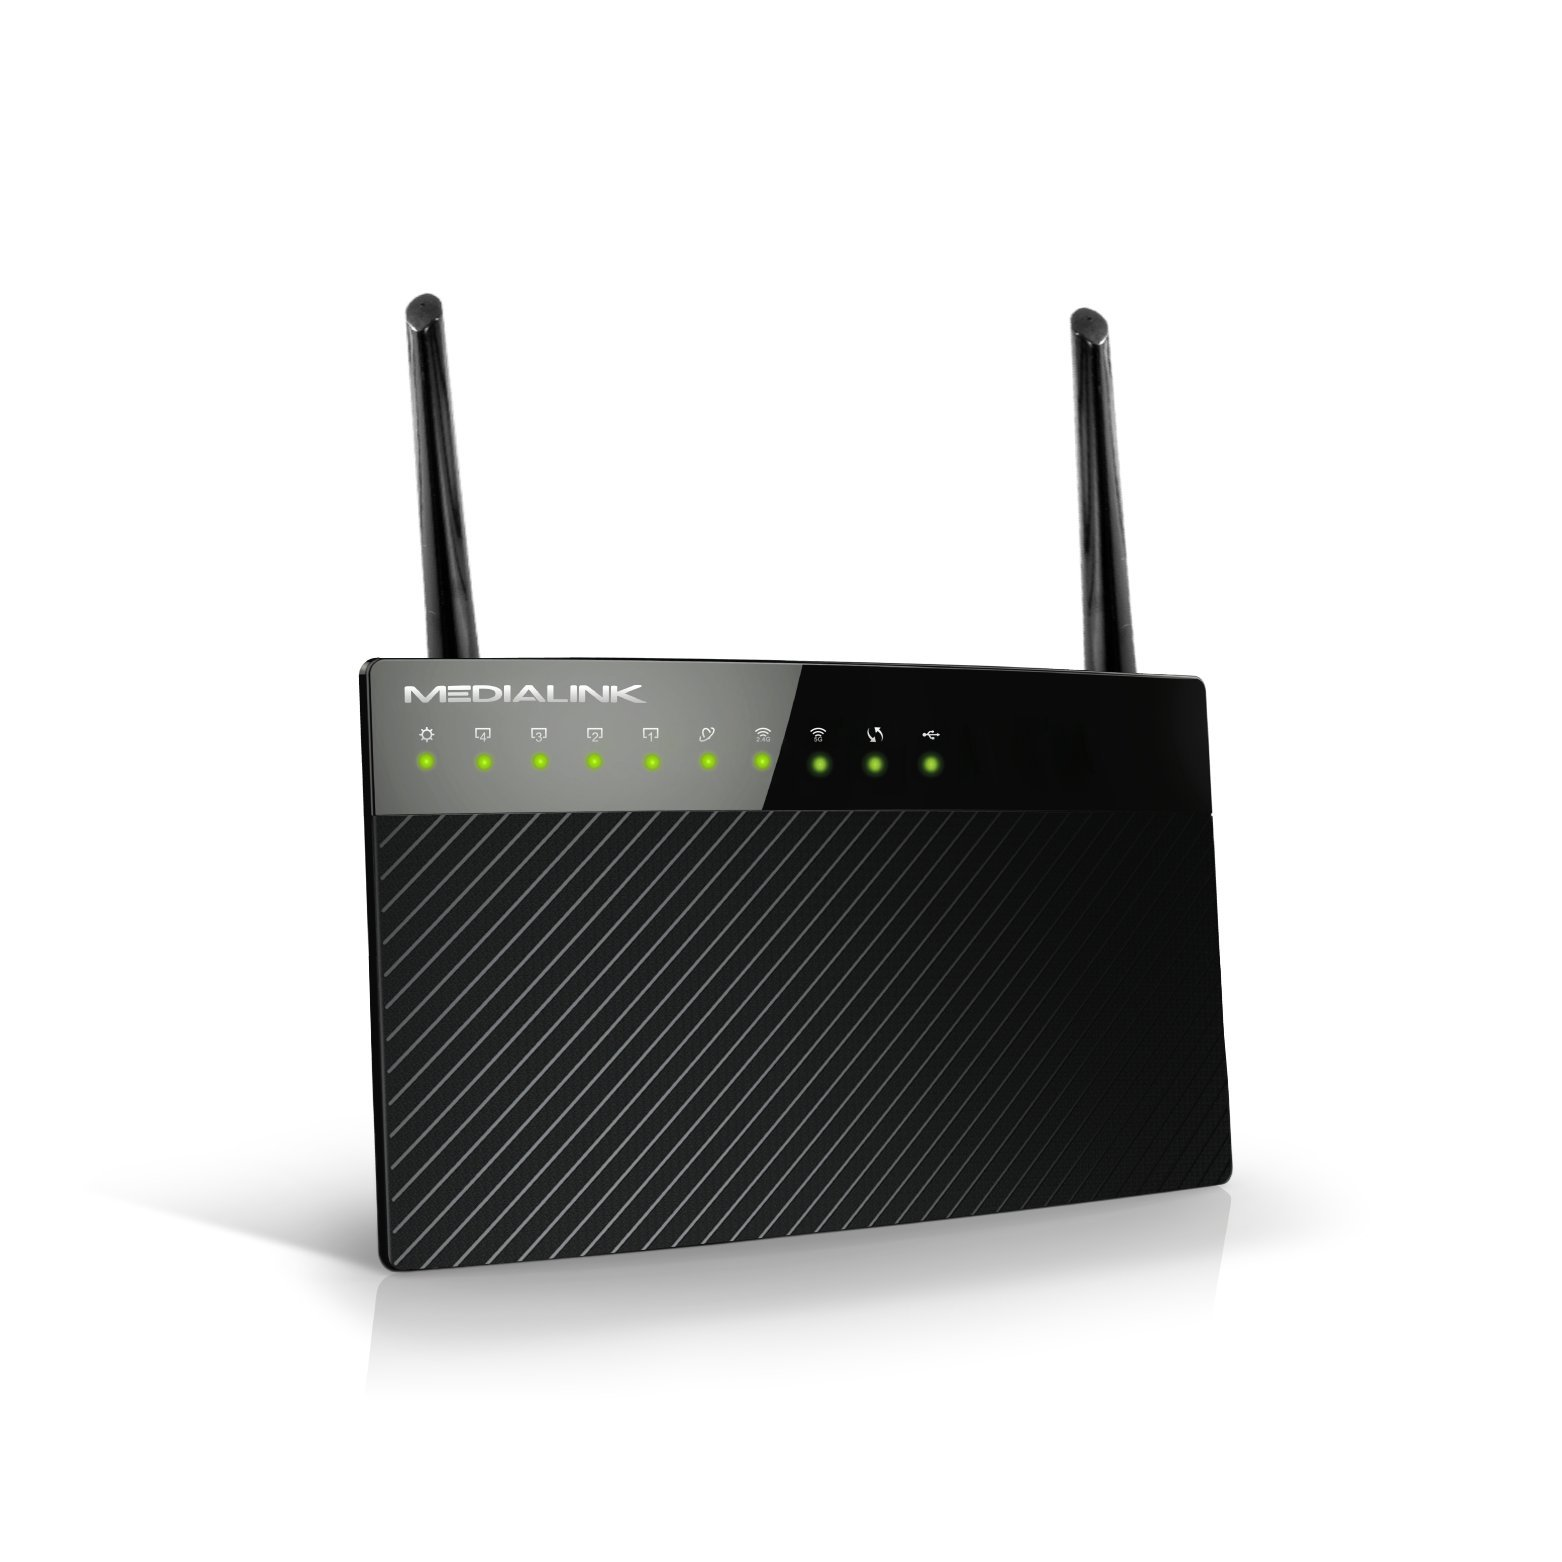 Medialink AC1200 Wireless Gigabit Router - Gigabit (1000 Mbps) Wired Speed & AC 1200 Mbps Combined Wireless Speed (Part# MLWR-AC1200)